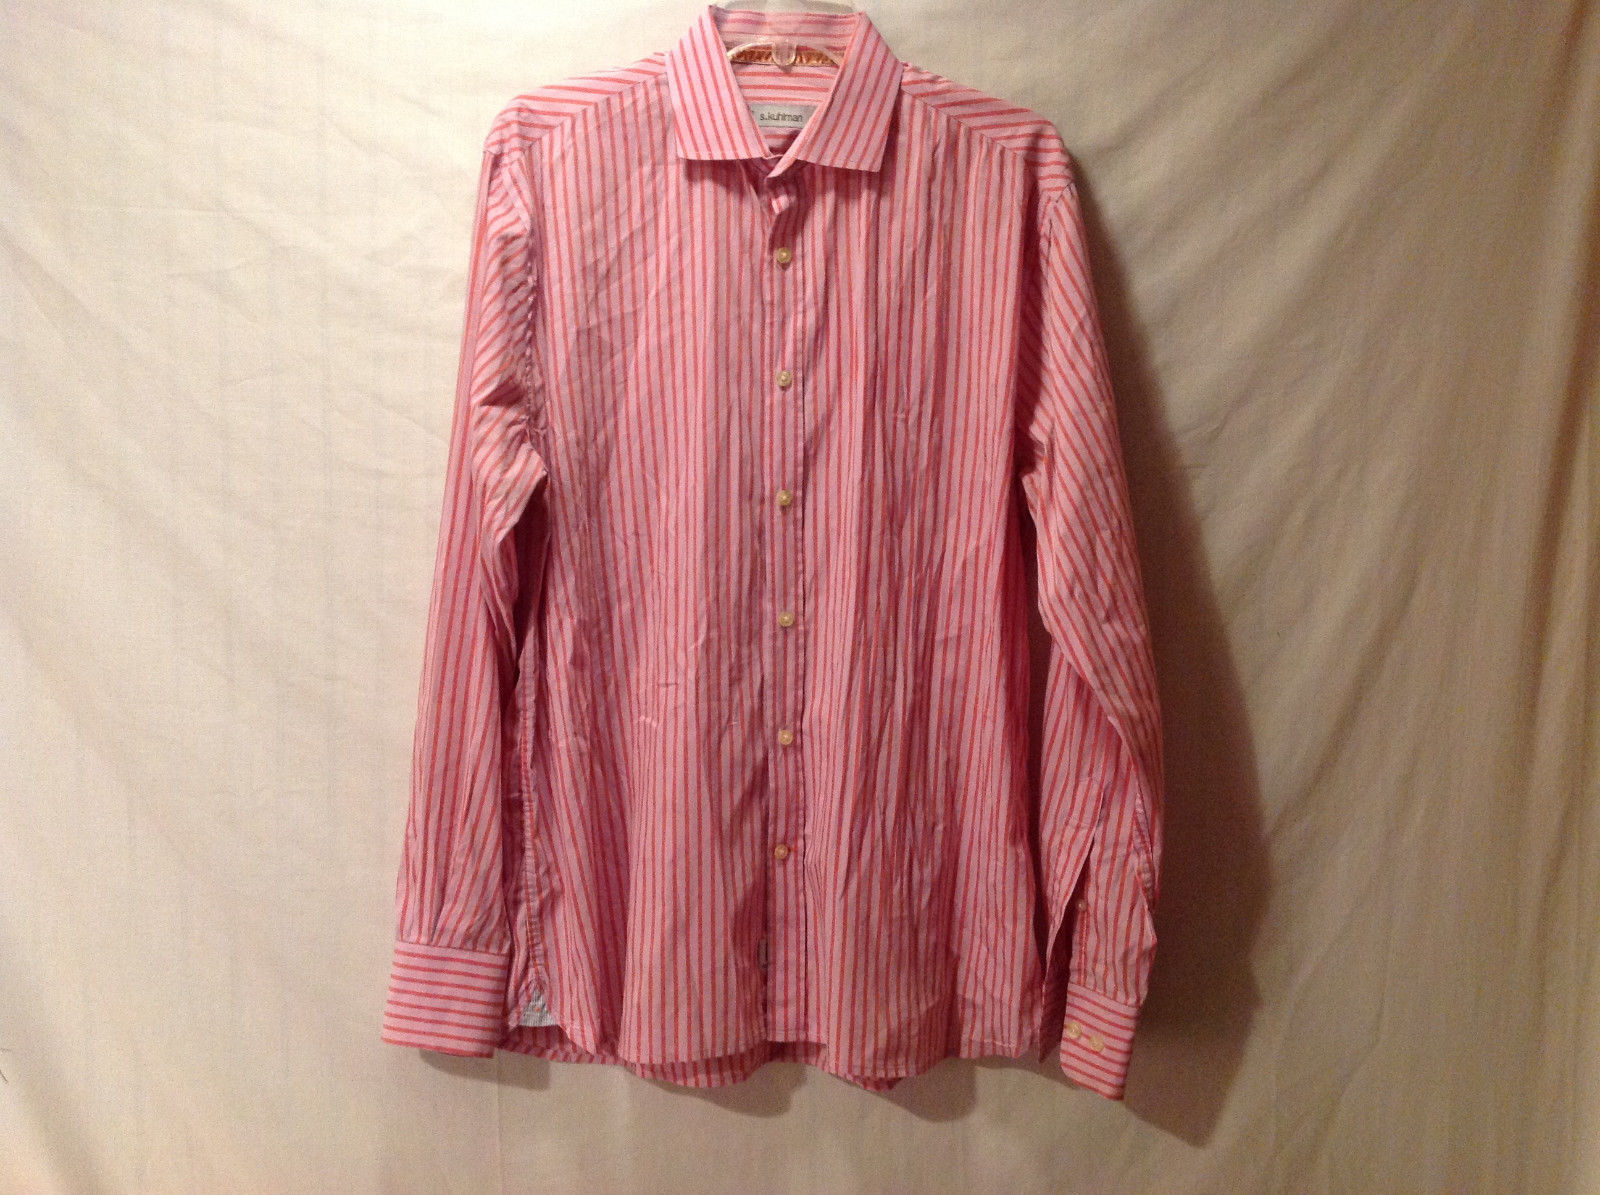 S. Kuhlman Men's EU Size 40 Button Down Shirt Pink Salmon Orange Vertical Stripe